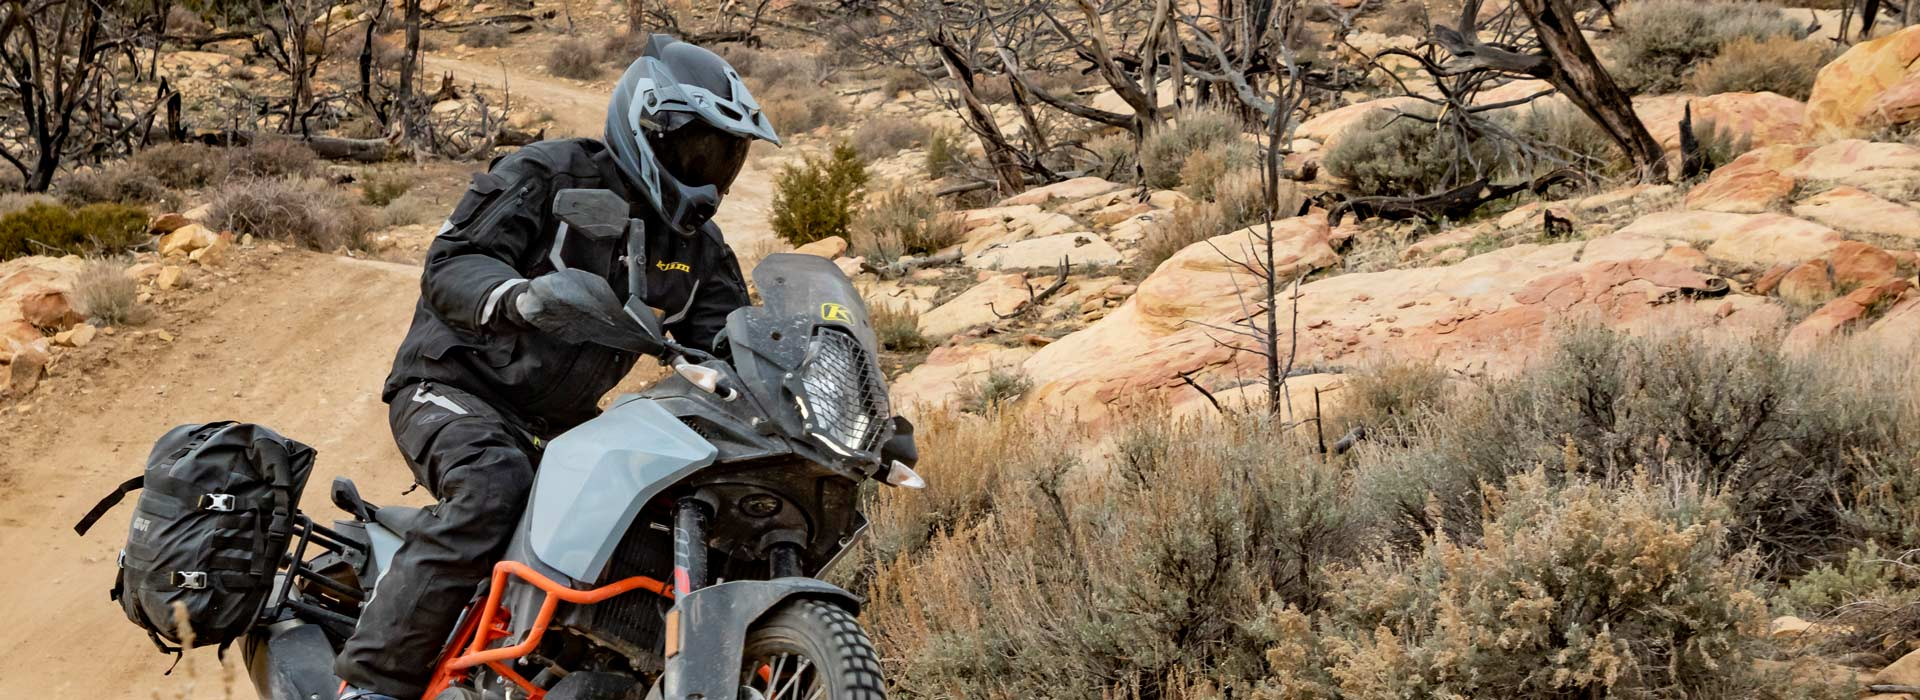 2019 Motorcycle Gear | KLIM